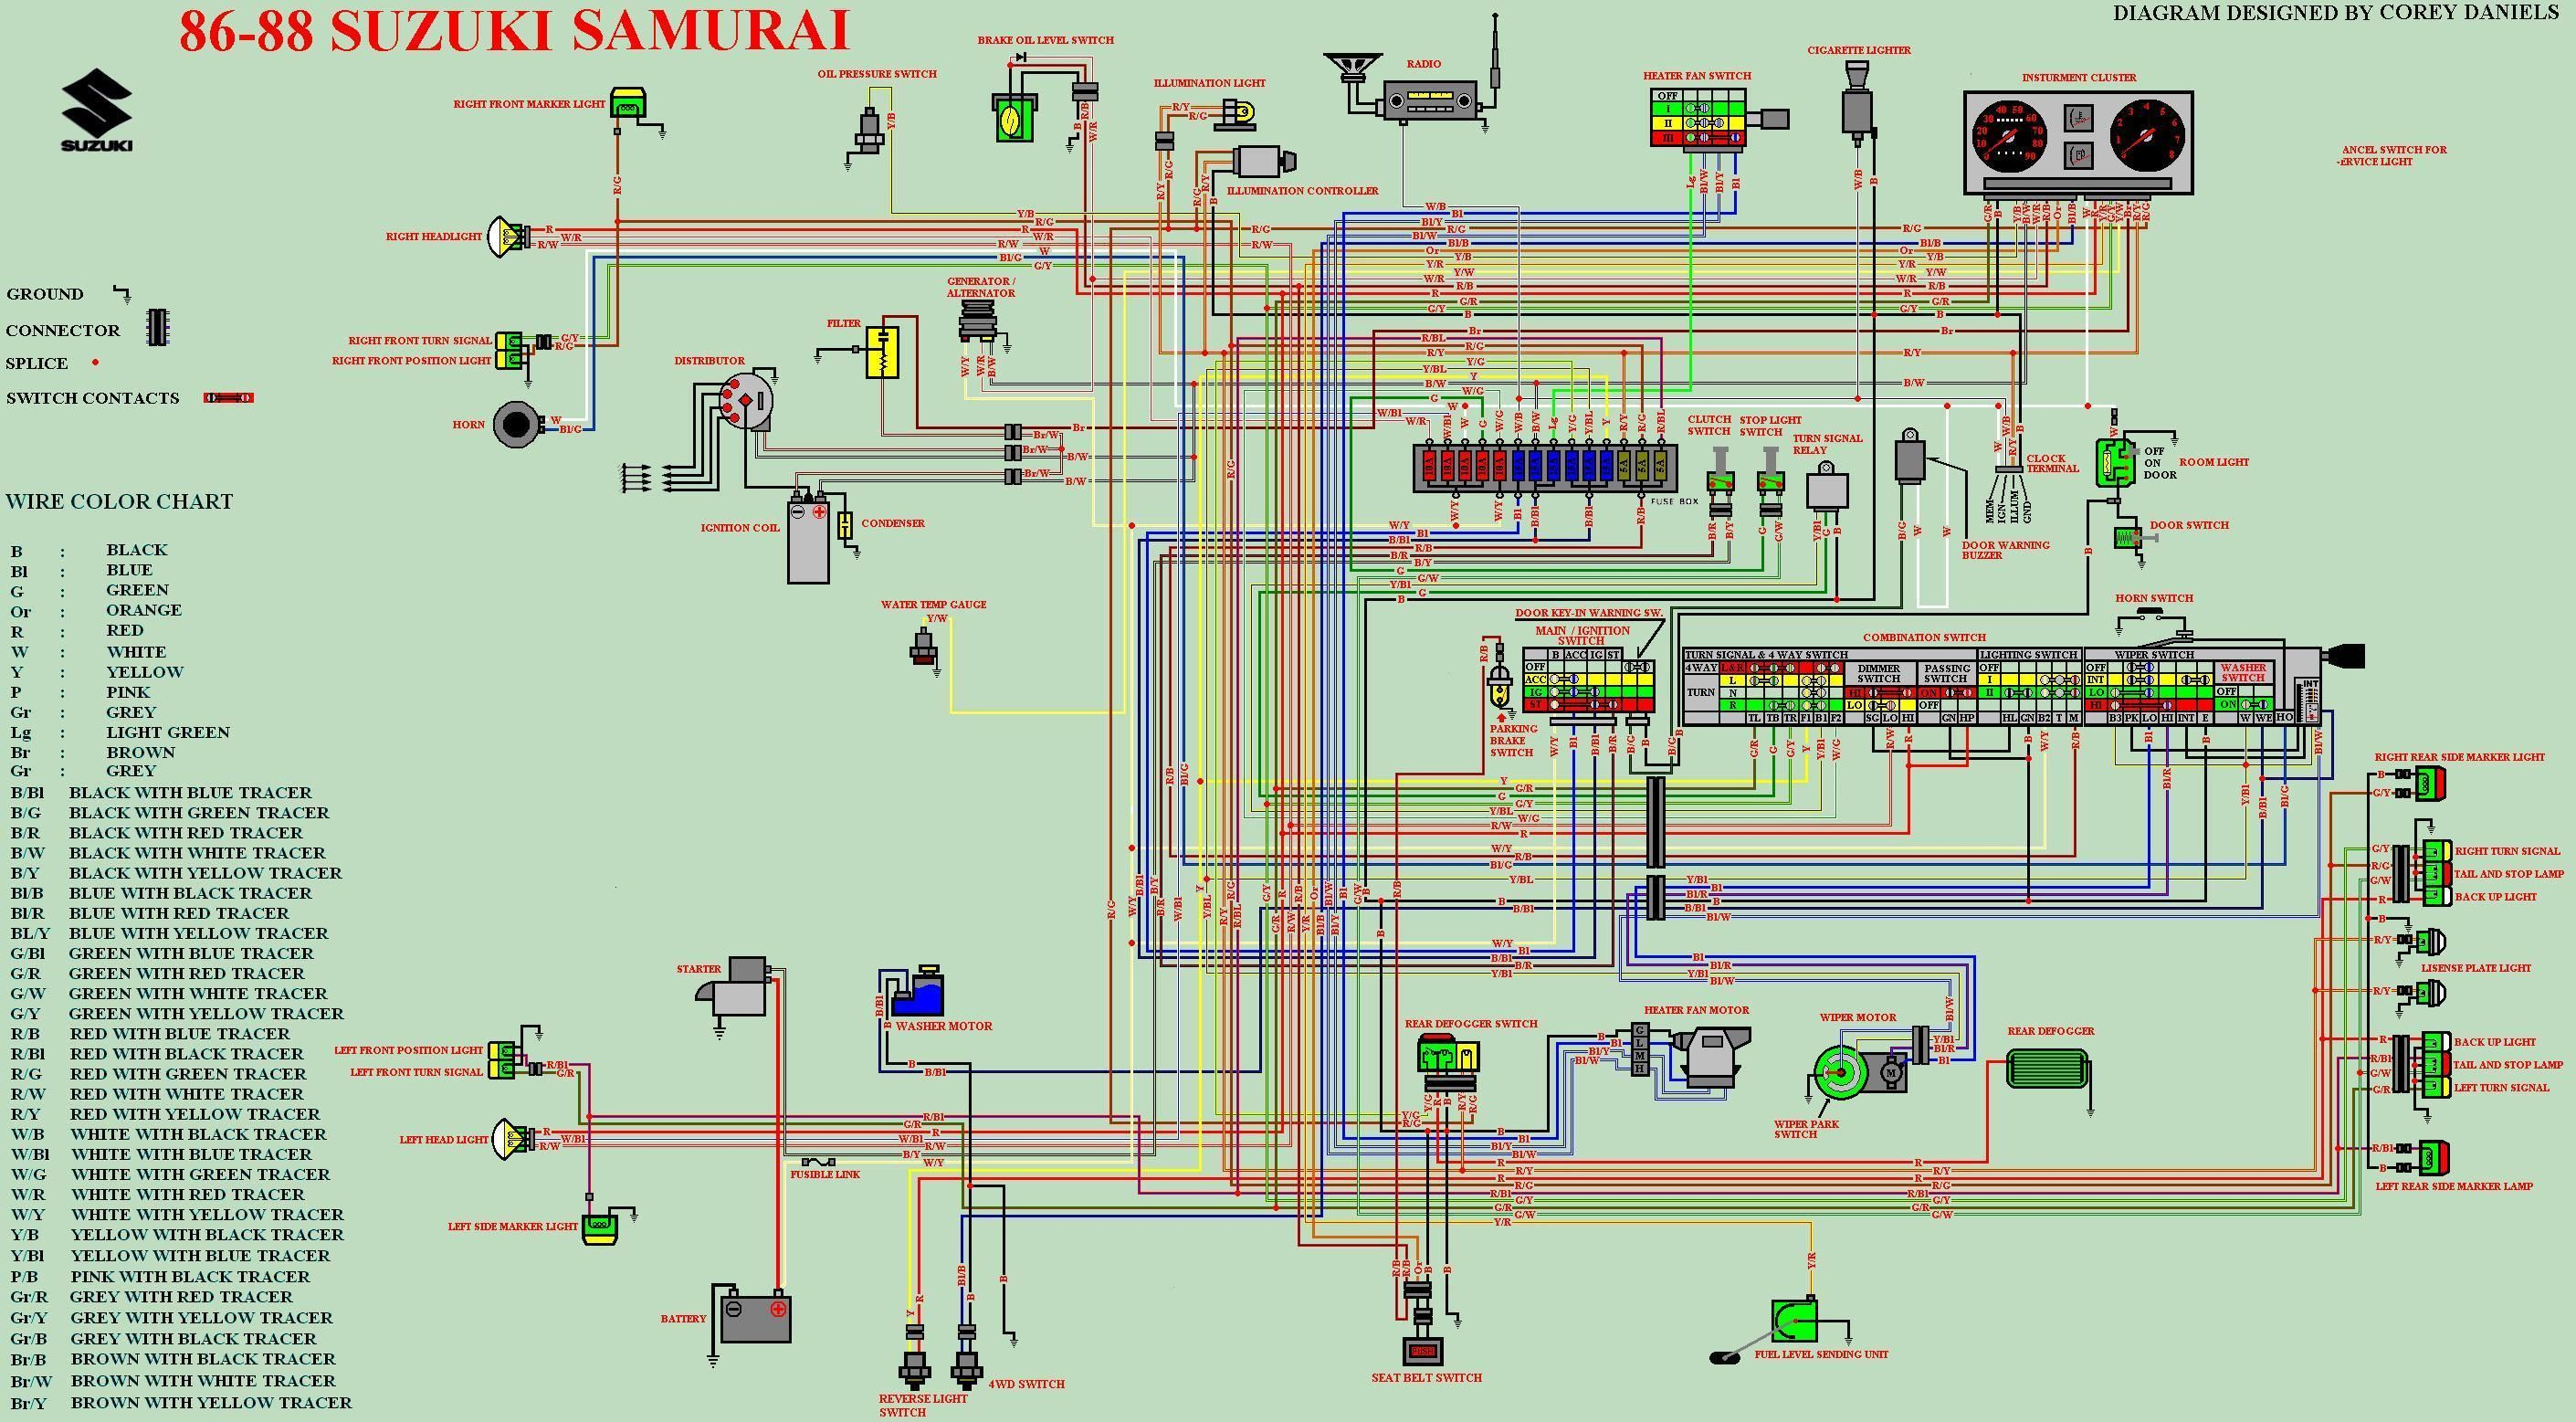 samurai schematics for running without stock hitachi carburetor emissions system [ 2821 x 1557 Pixel ]